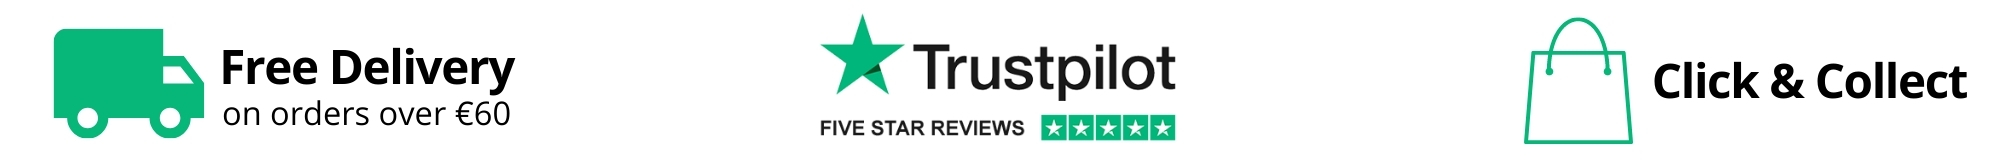 FREE DELIVERY TRUST PILOT